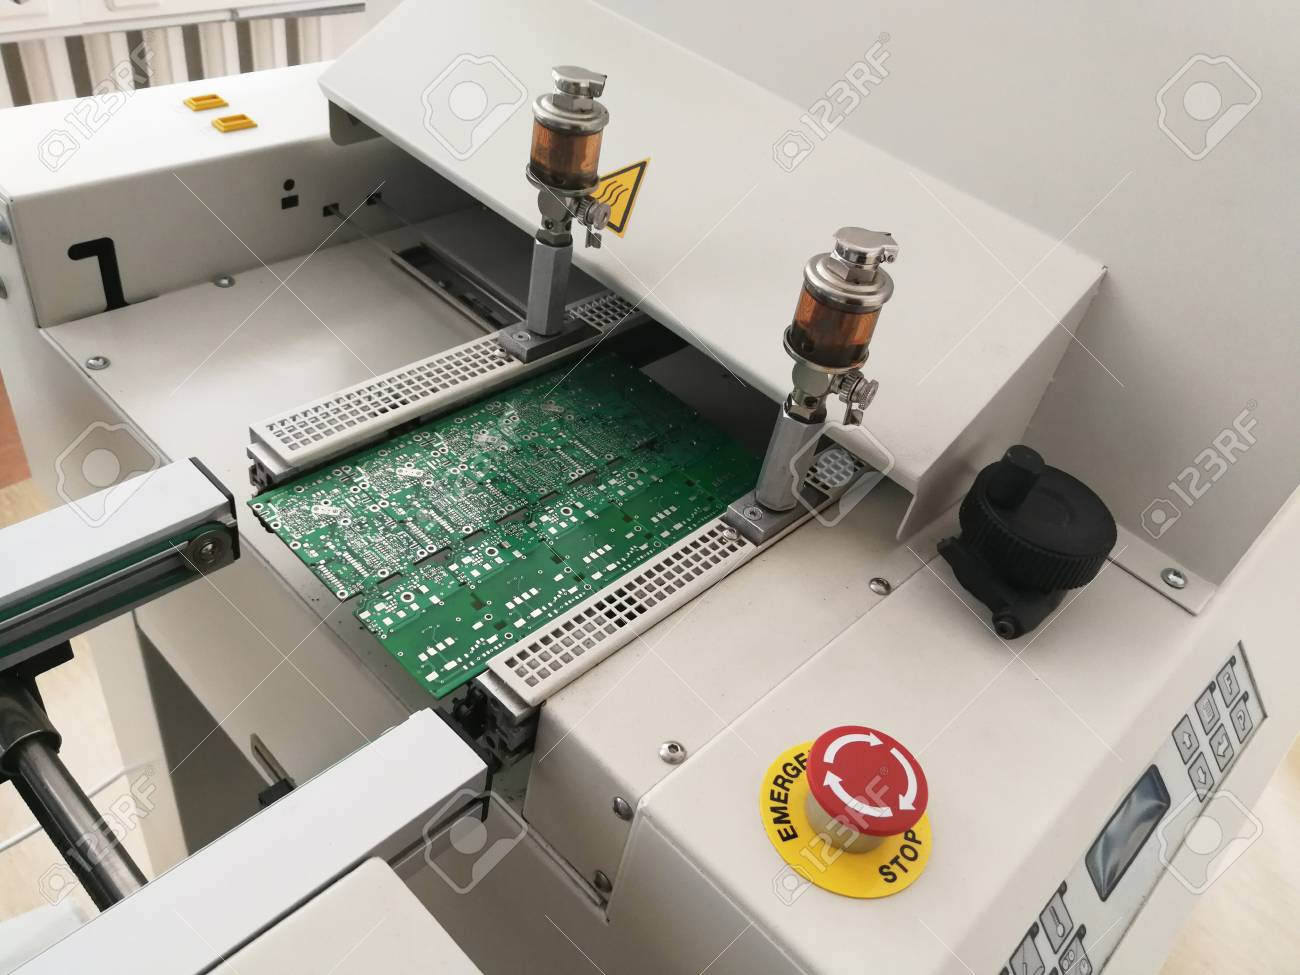 Printed Circuit Board After Full Assembly Moves To Reflow Oven Pcb Consists Of A Machine For Heating Up Soldering Paste